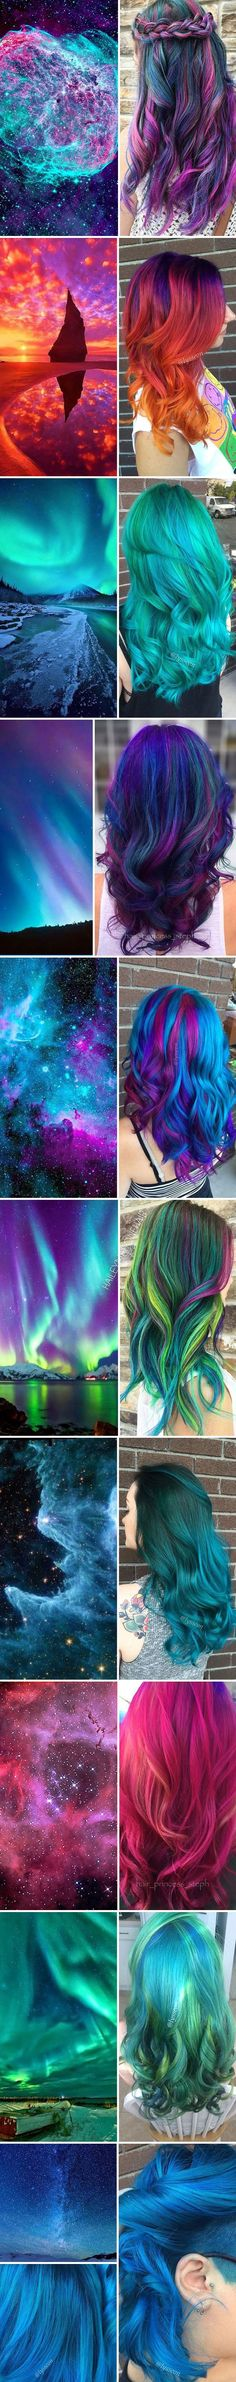 "This ""Galaxy Hair"" trend is actually quite mesmerizing - 9GAG"